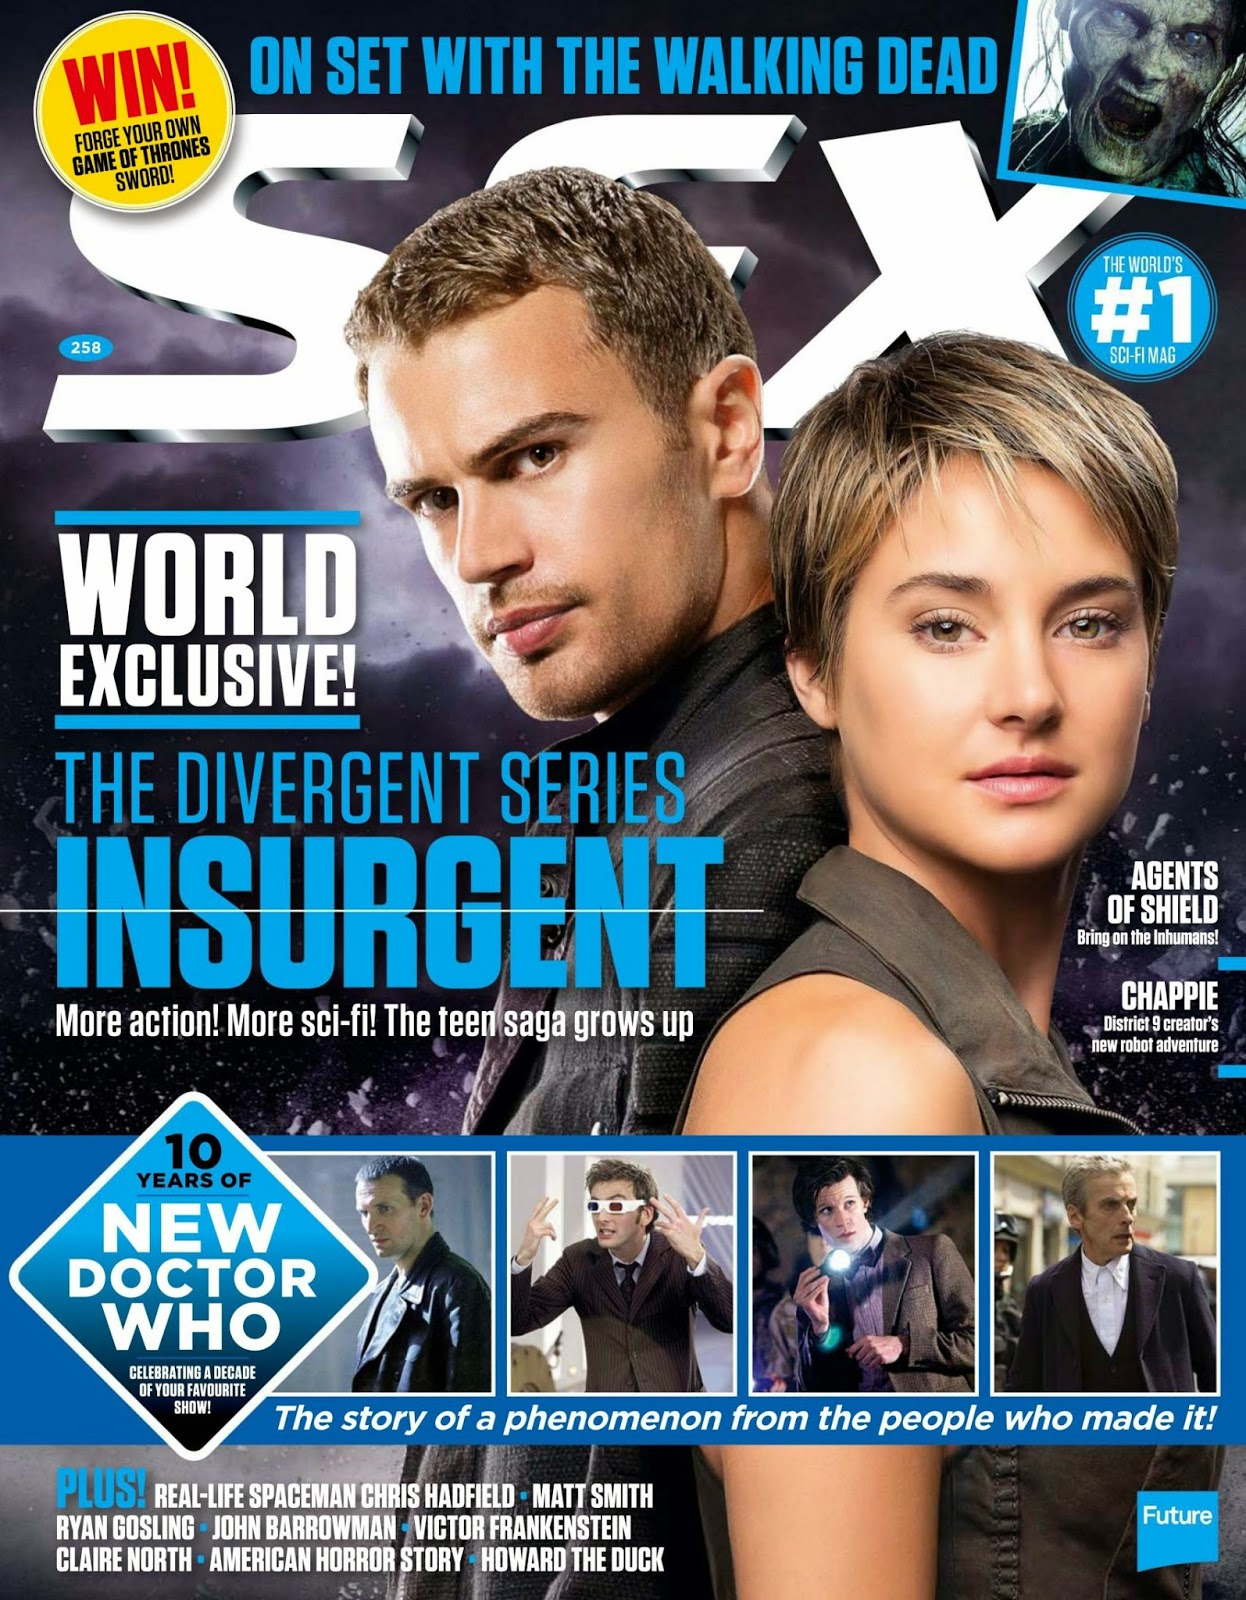 Actress: Theo James and Shailene Woodley For SFX UK